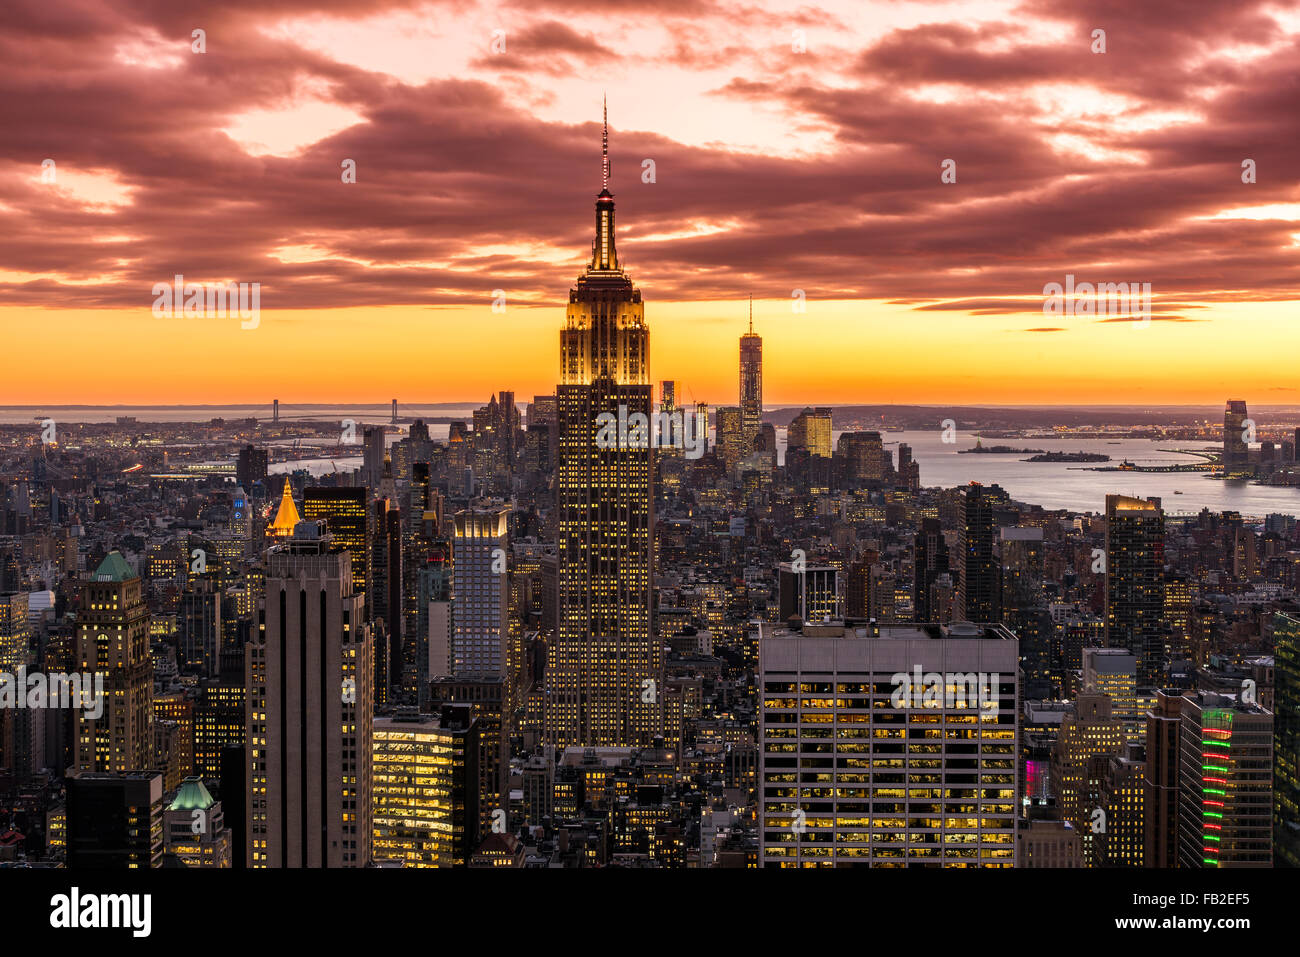 Vue sur Manhattan skyline au coucher du soleil du haut de la roche, New York, USA Photo Stock